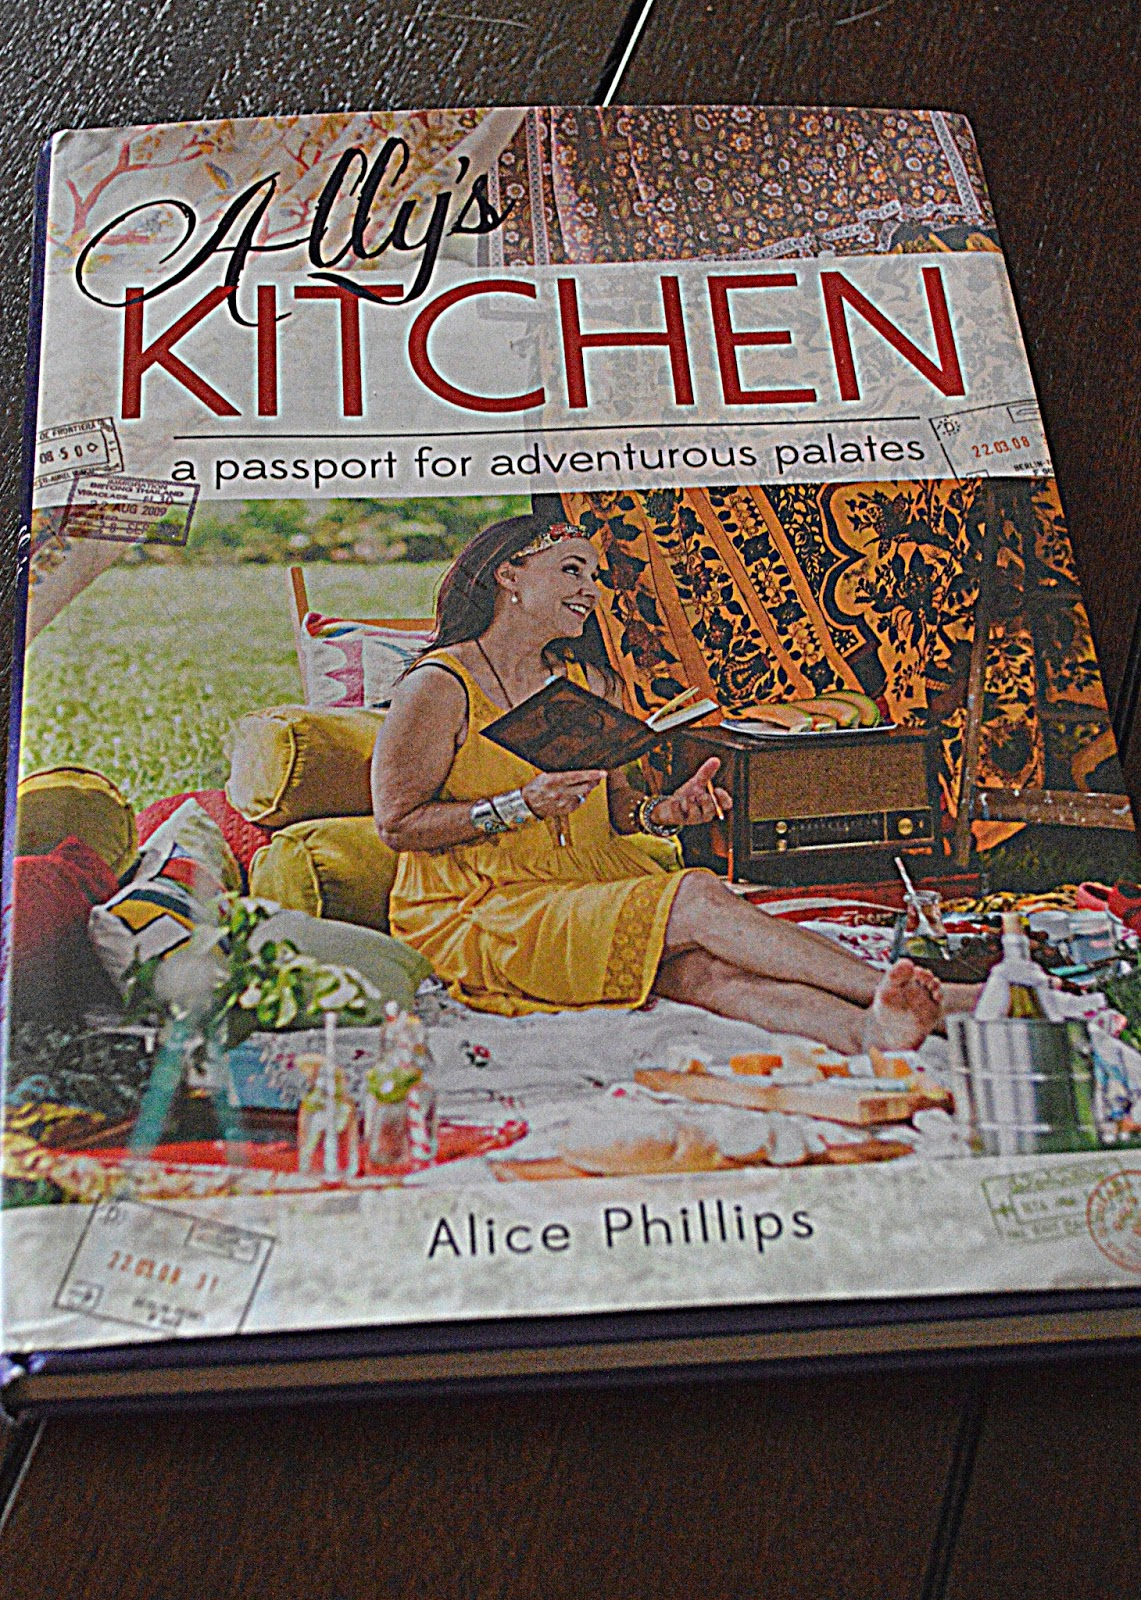 And I Get To Share With You About Ally's Kitchen ~ A Passport For  Adventurous Palates